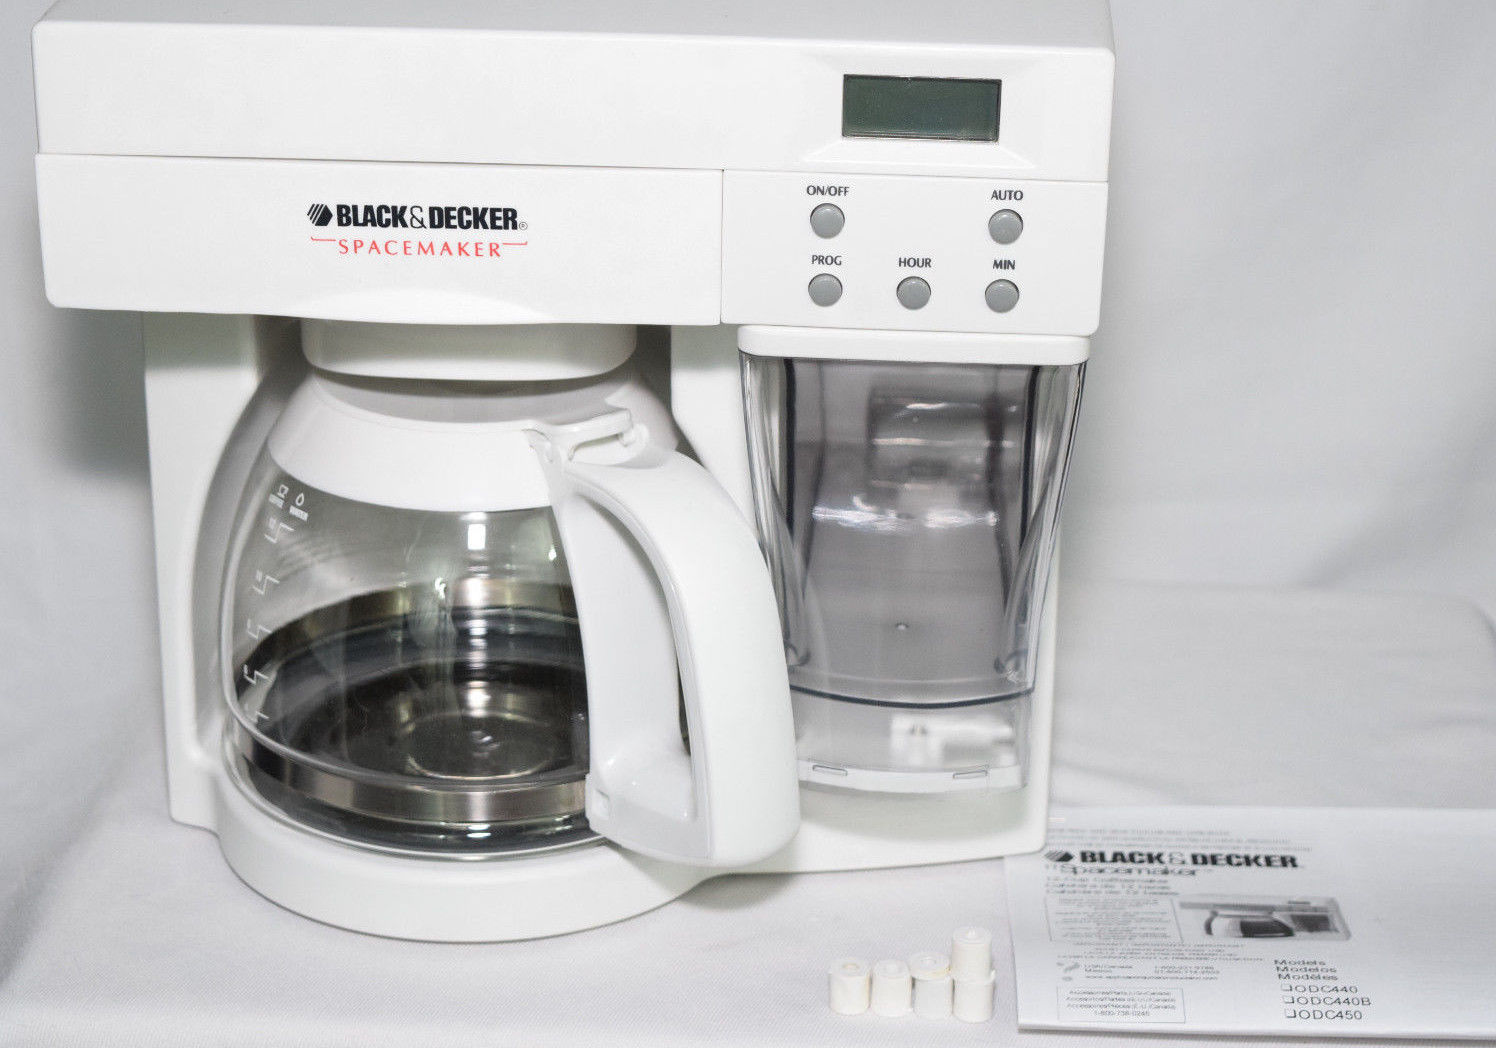 Black Decker Spacemaker 12 Cup Coffee Maker And 50 Similar